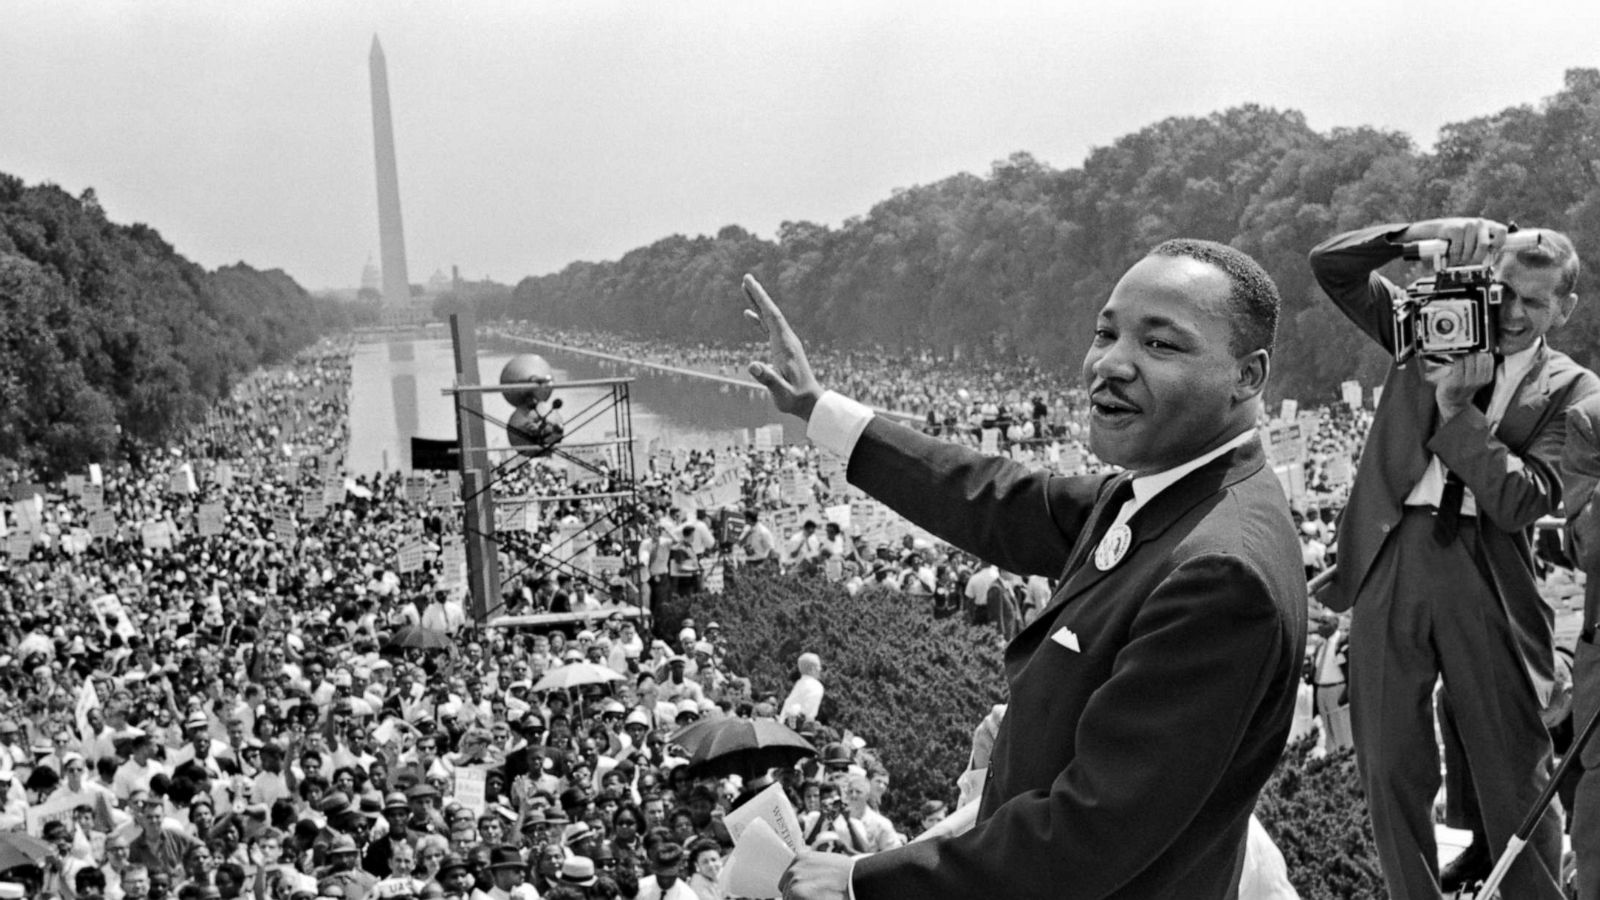 Fbi Which Conducted Surveillance On Mlk Sees Backlash After